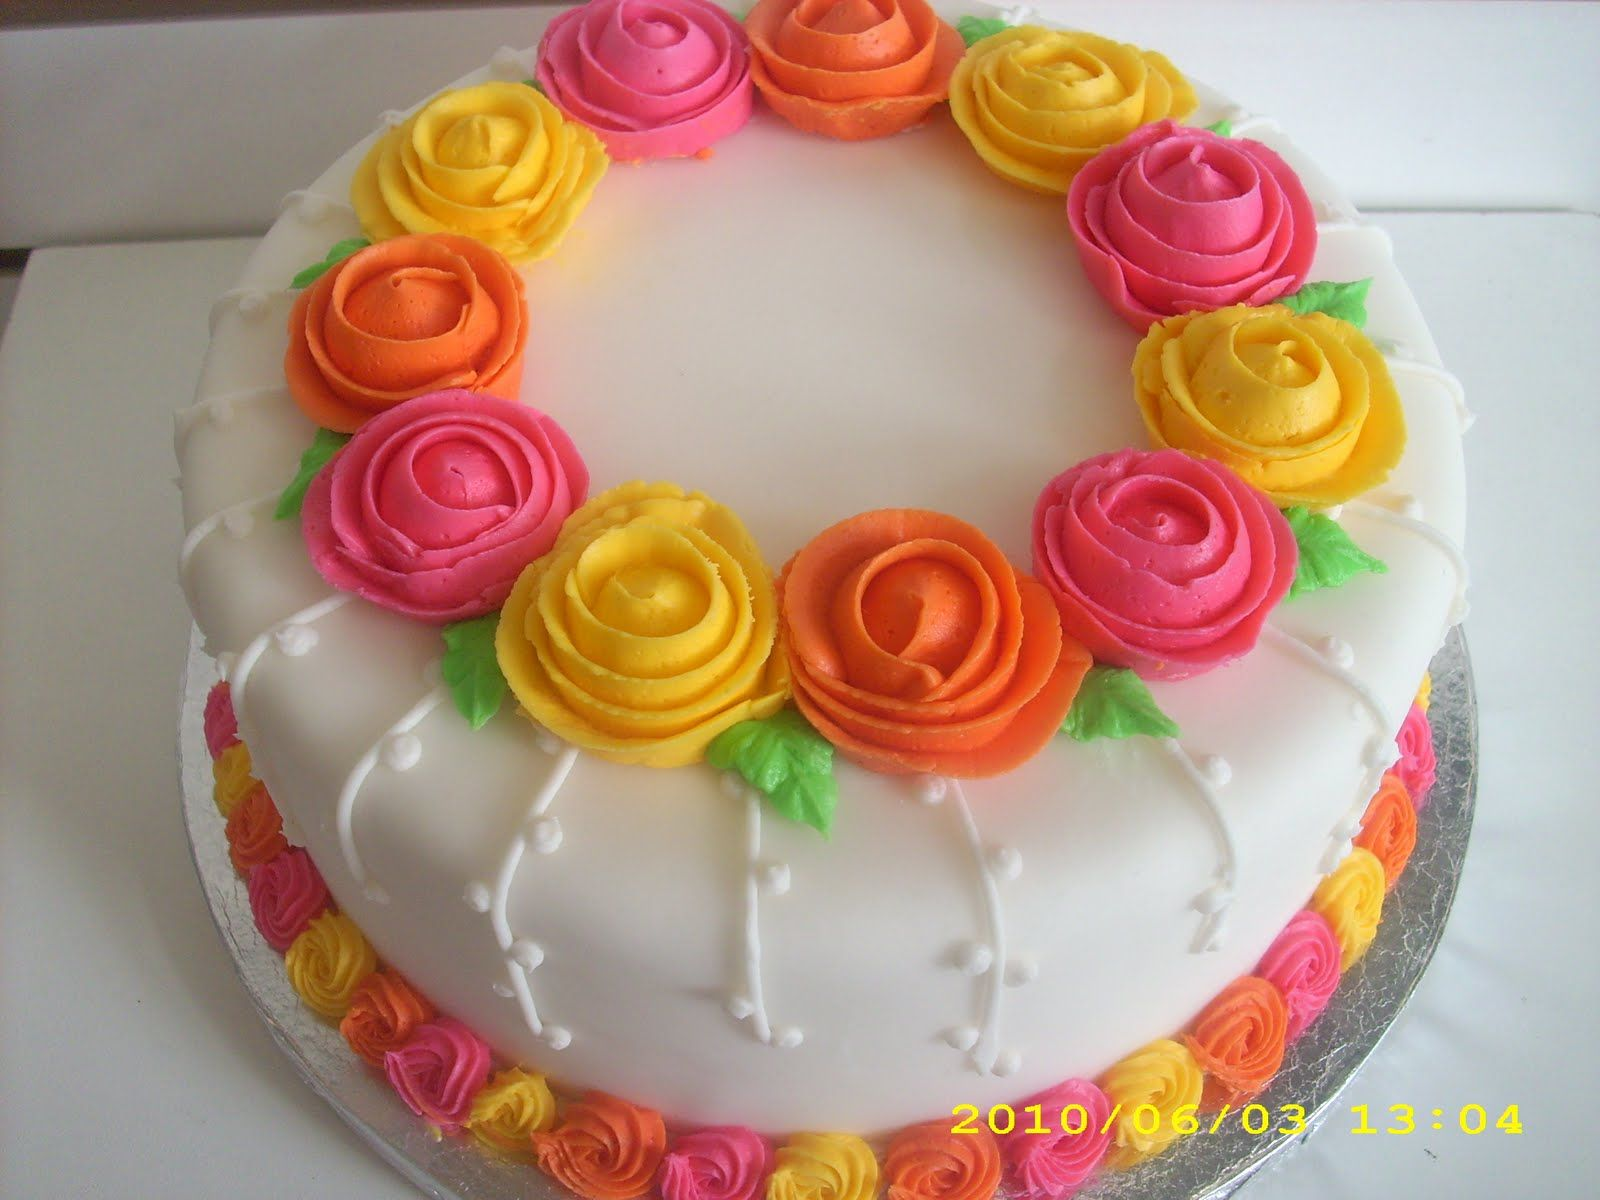 simple cake decoration the wilton method decorating basics course